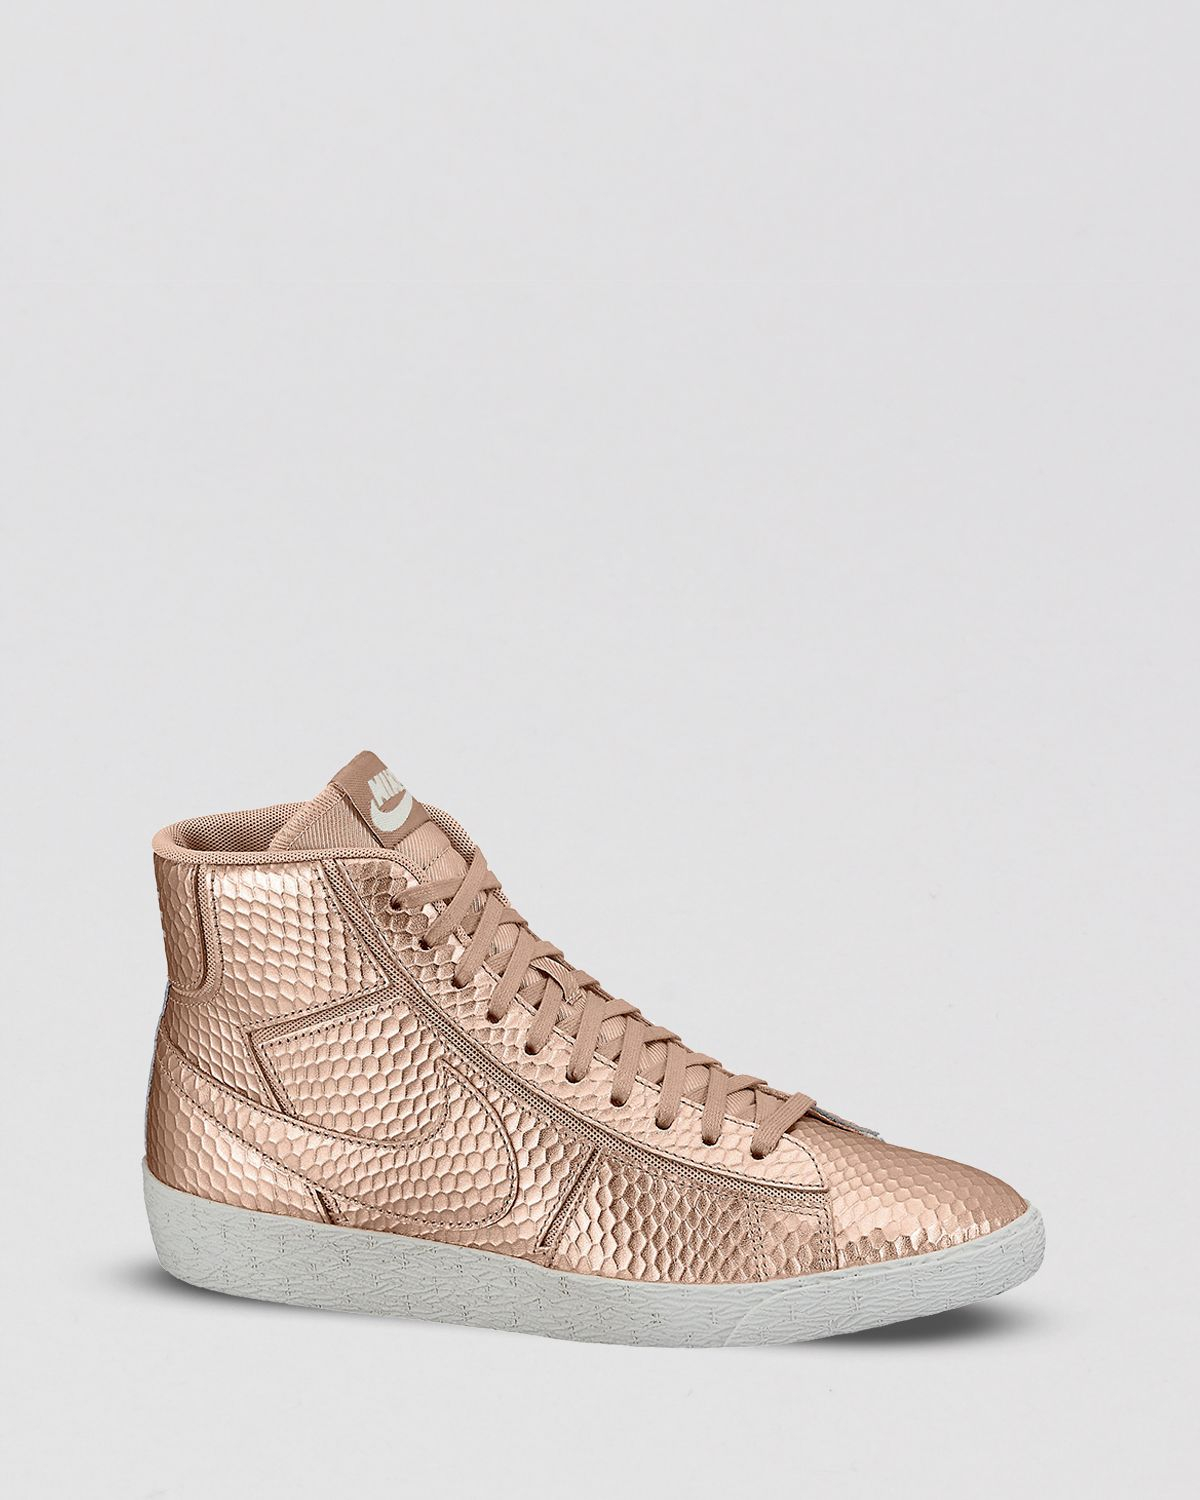 cd3fc99b3421 Lyst - Nike Lace Up High Top Sneakers Womens Blazer Mid Cutout in ...